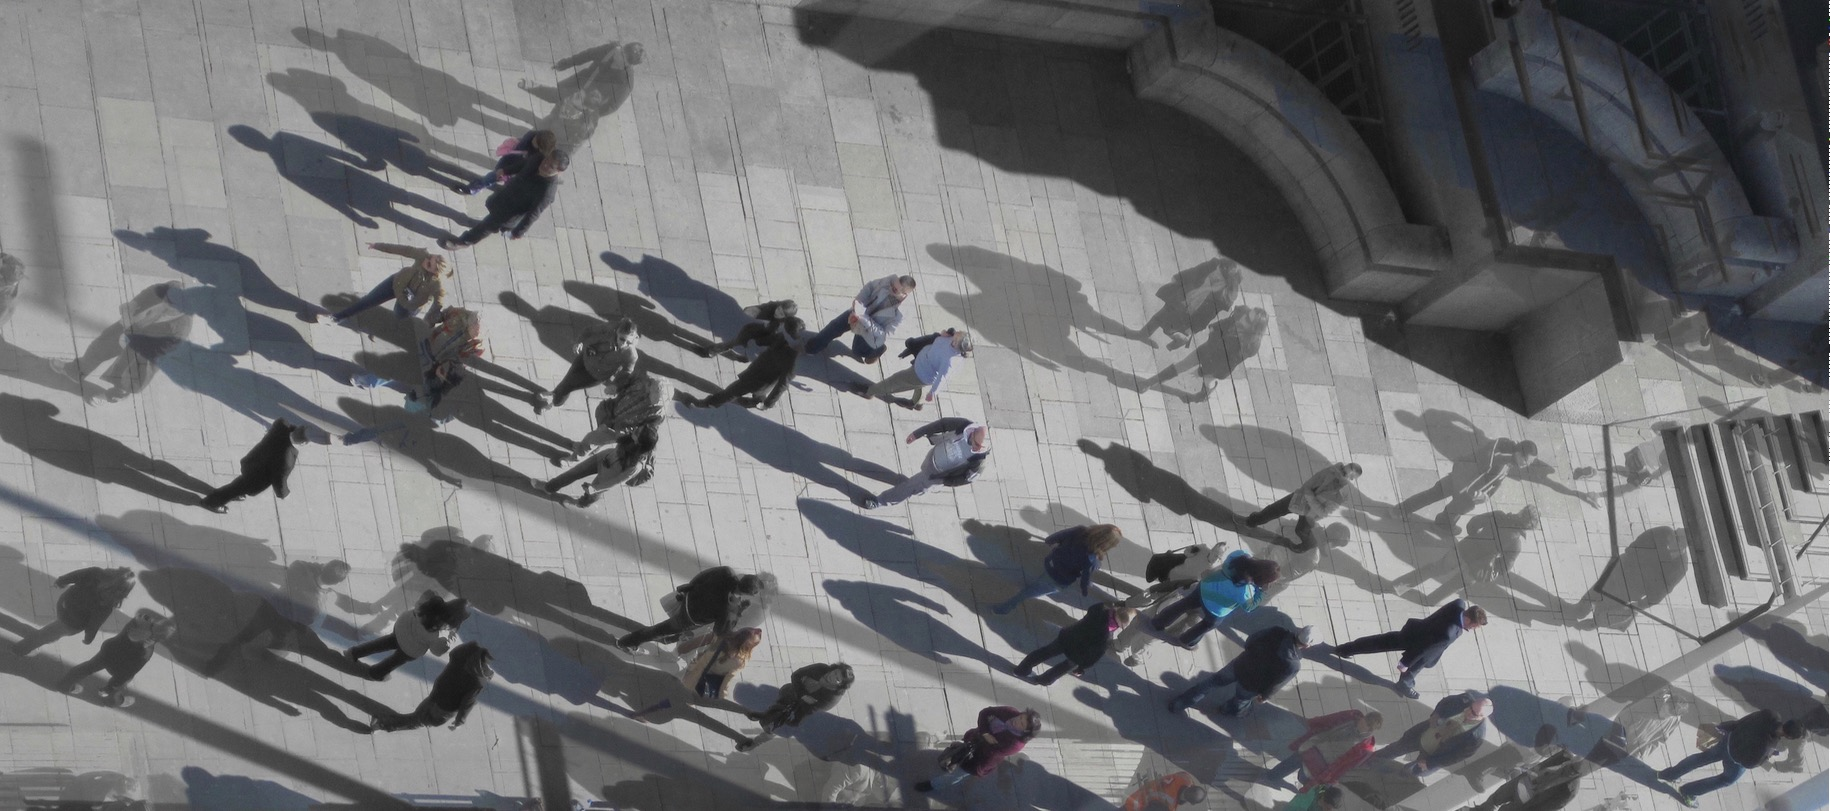 London Eye . ©2015 Sean Walmsley.This is a view looking down from one of the gondolas of the London Eye.This photo is a combination of several photos taken within milliseconds of each other, then layered together in both black-and-white and color.